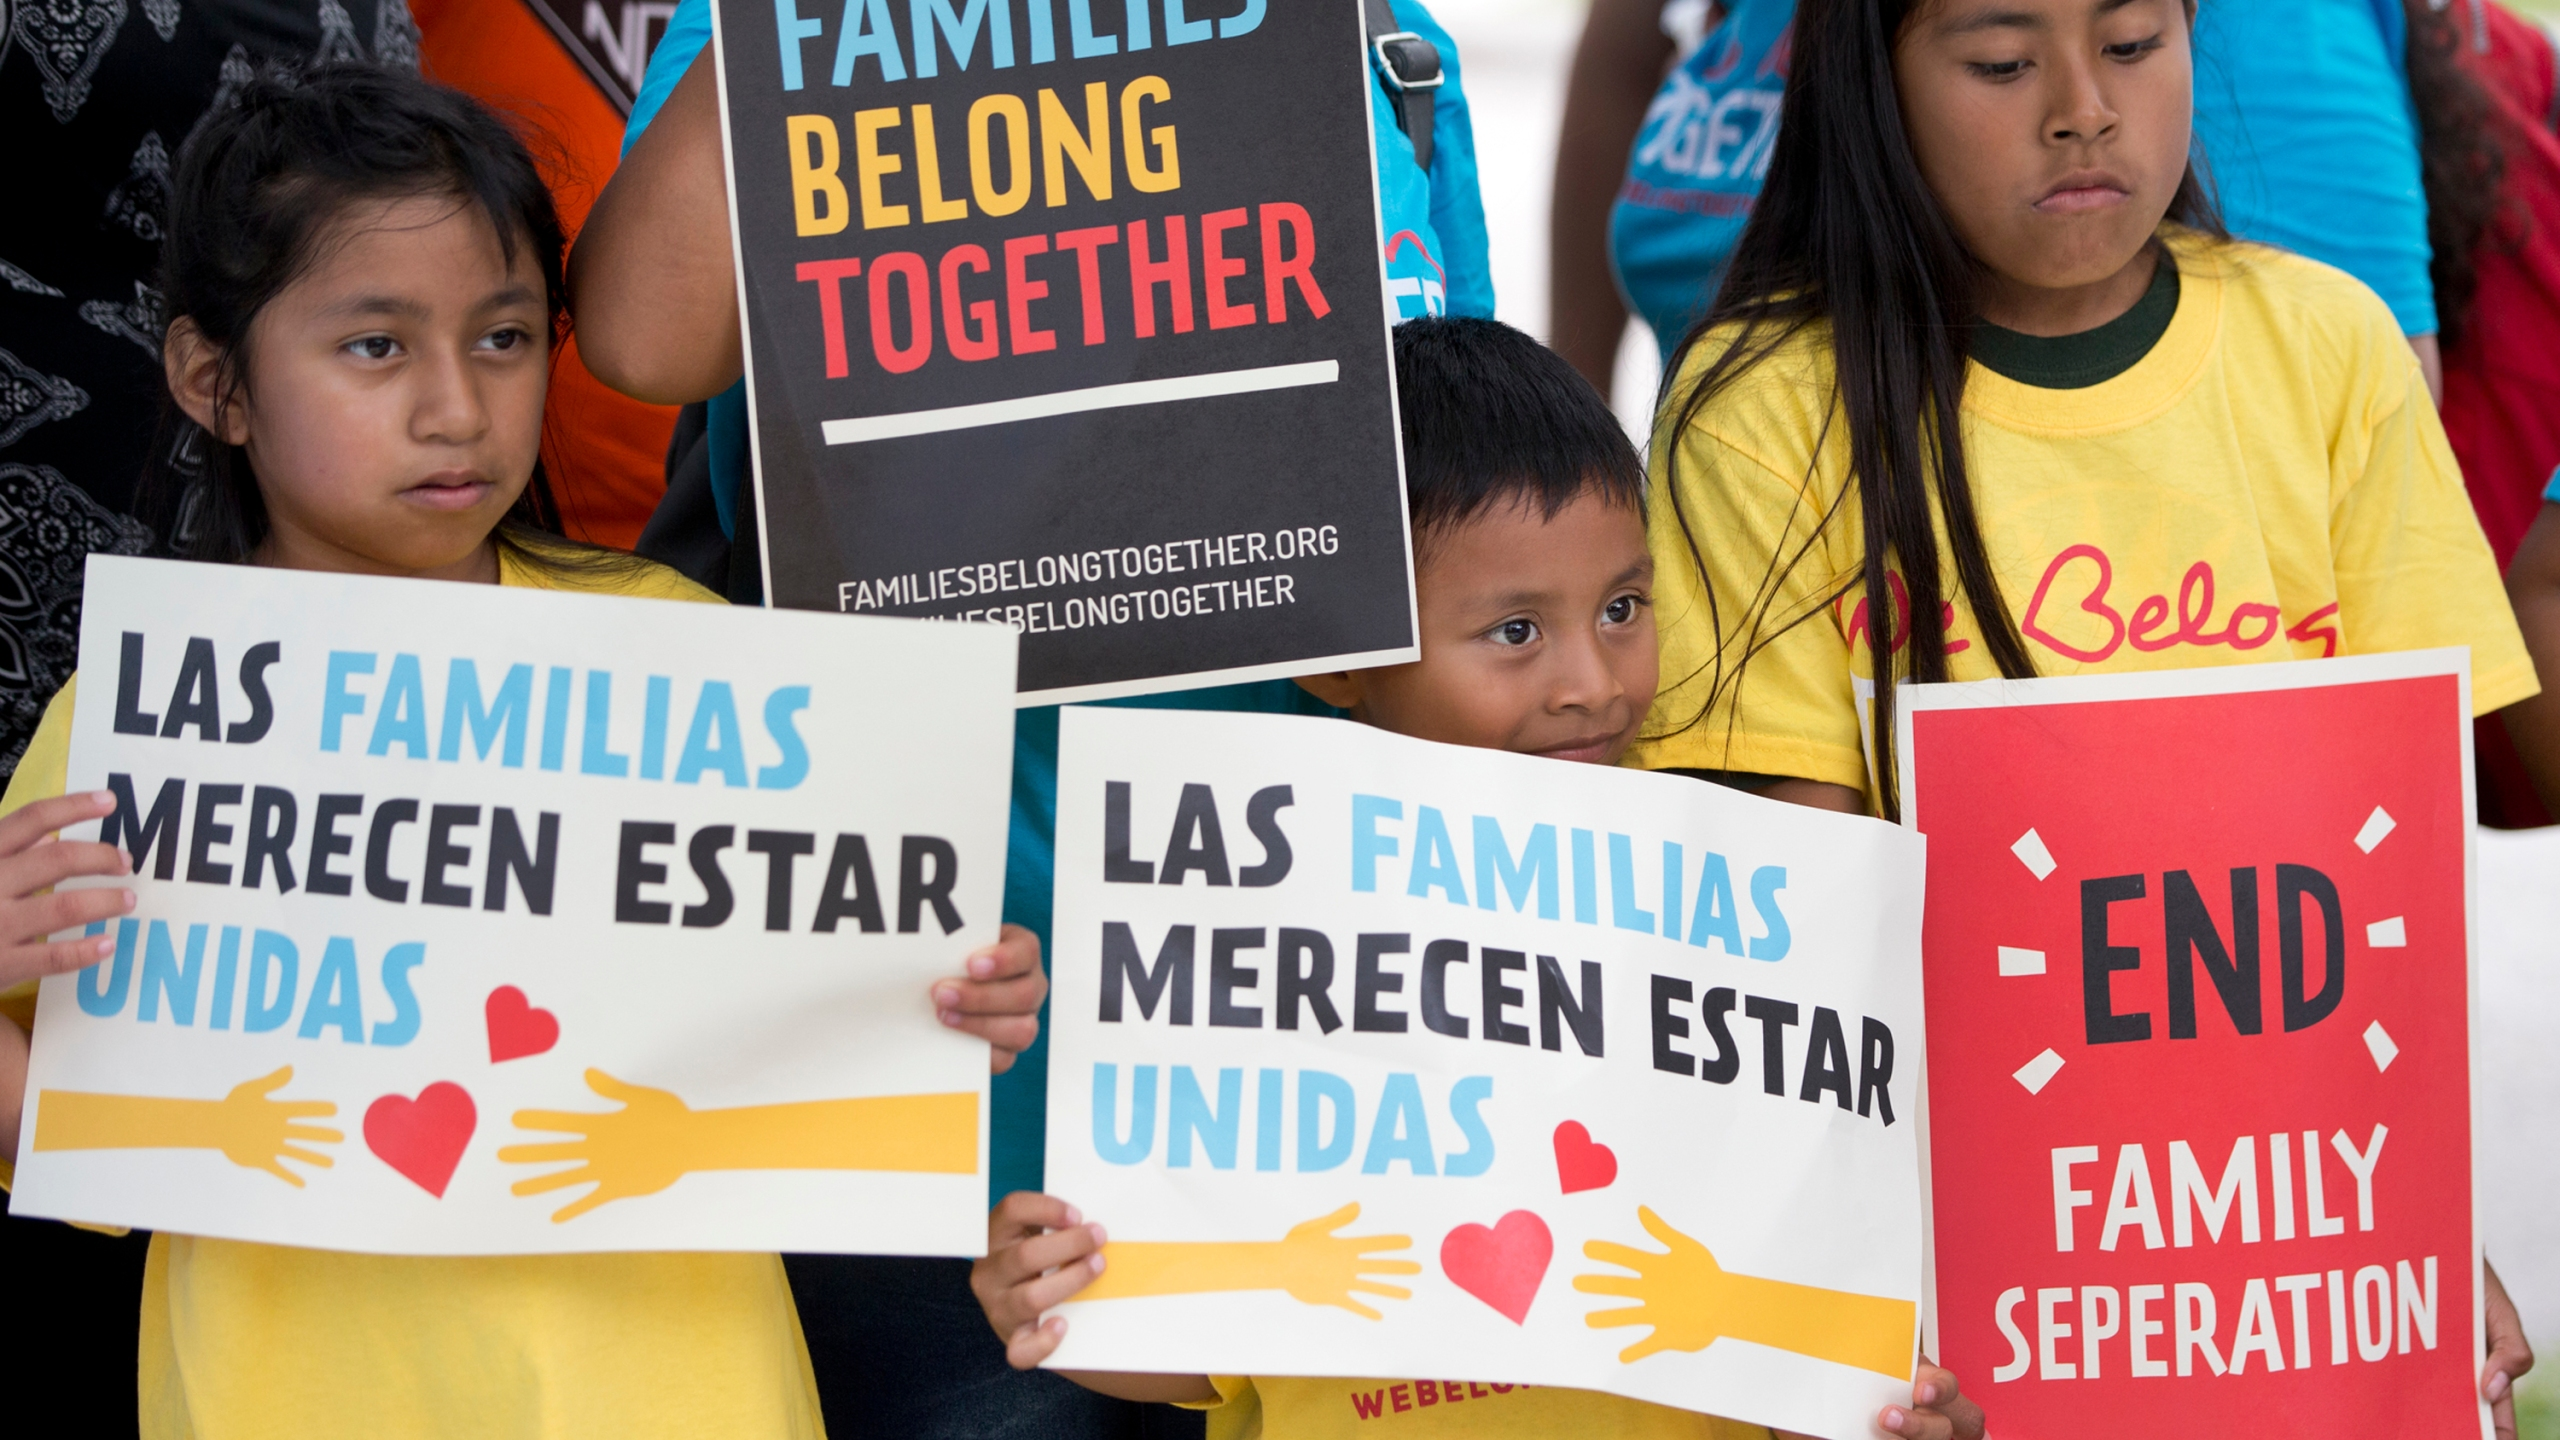 Immigration_Separated_Families_68791-159532.jpg85312561